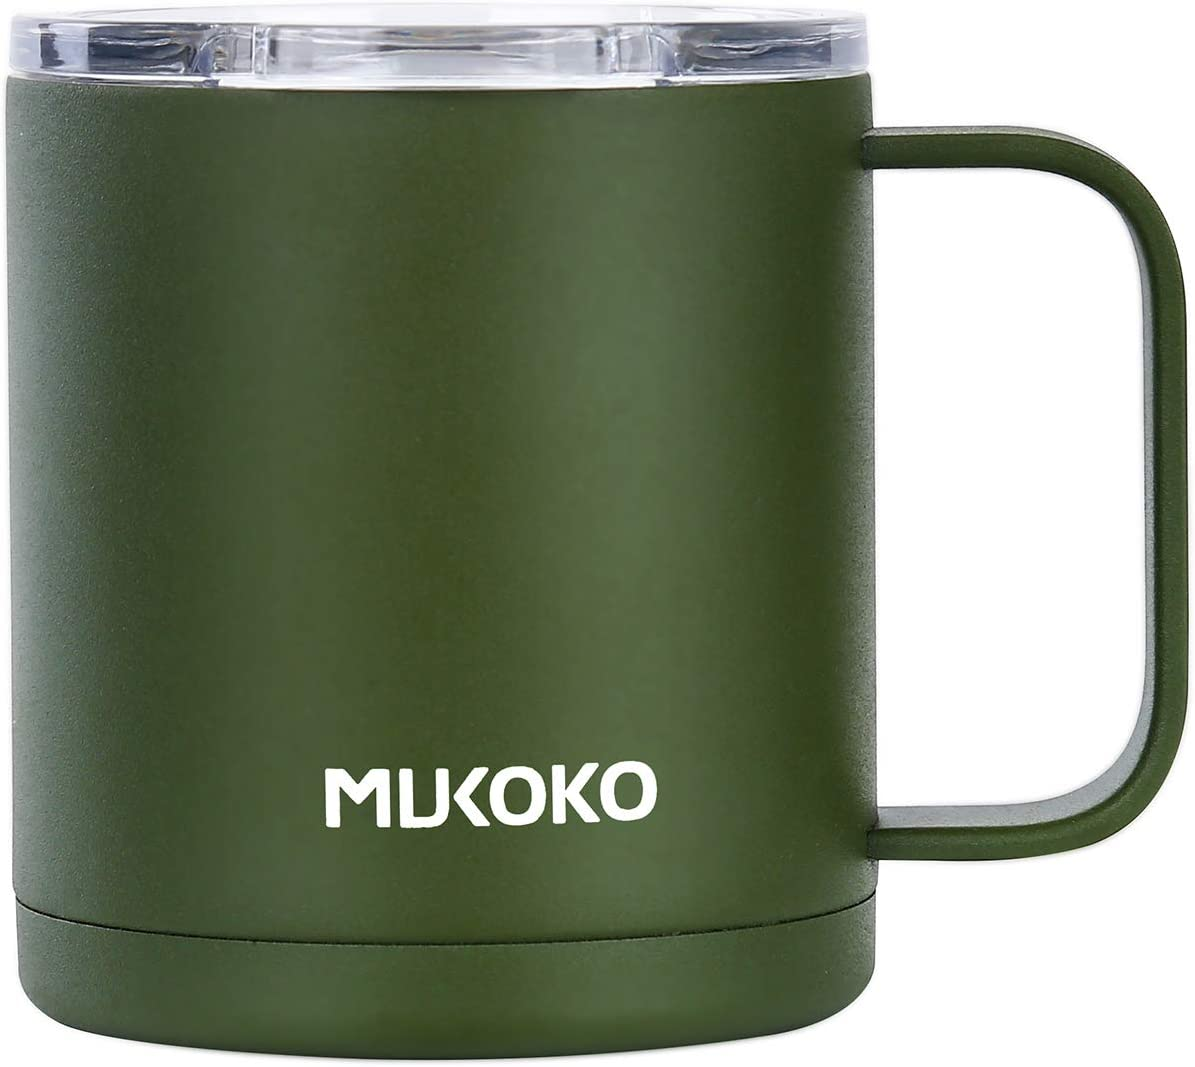 Insulated Coffee Mug With Lid and Handle,12 oz Double Wall Vacuum Sealed Camp Cup-For Hot or Cold Army Green